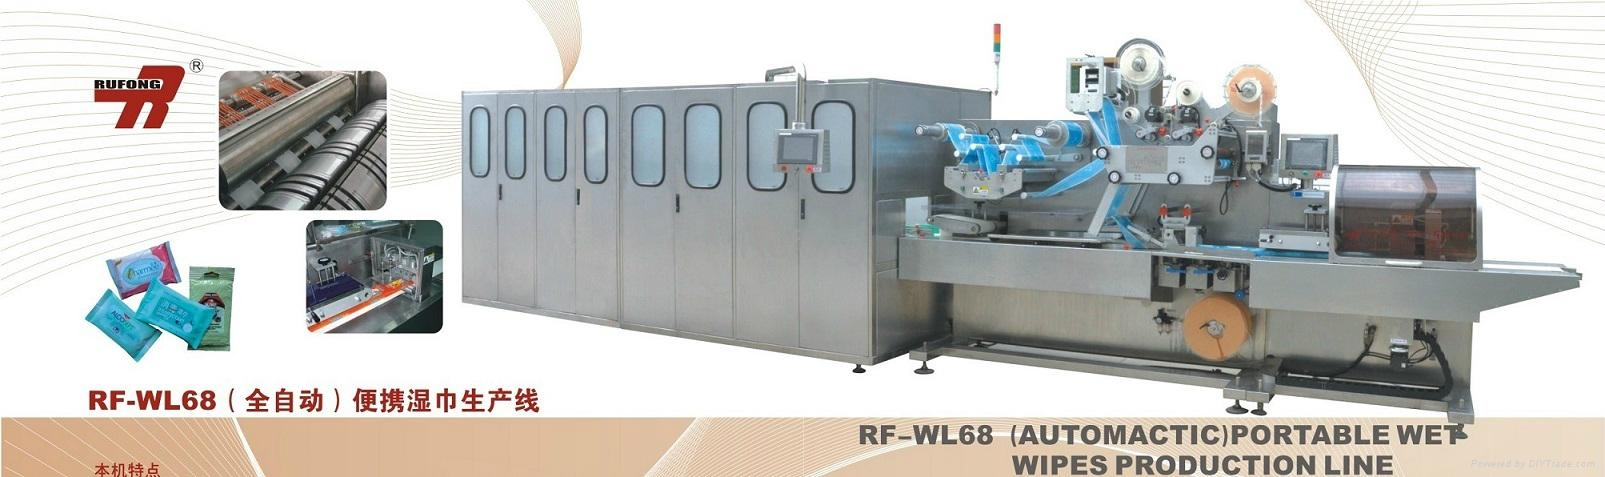 RF-WL68 (Automatic) Portable Wet Wipes Production Line 2